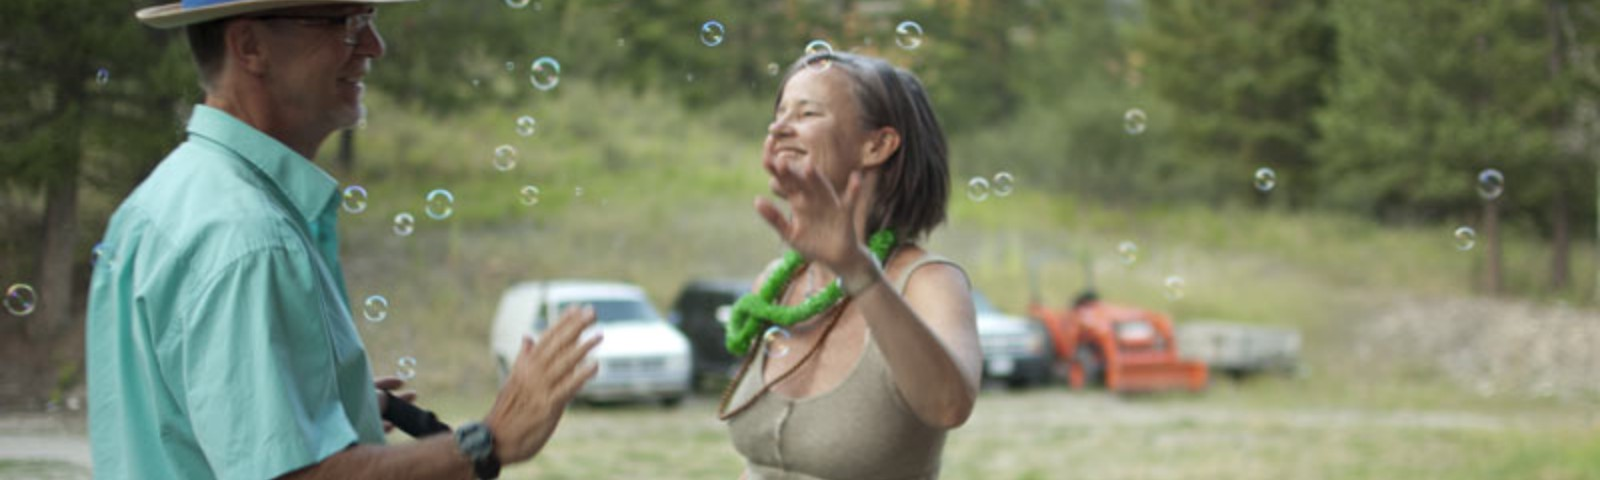 A white man and white woman standing in a field playing with bubbles